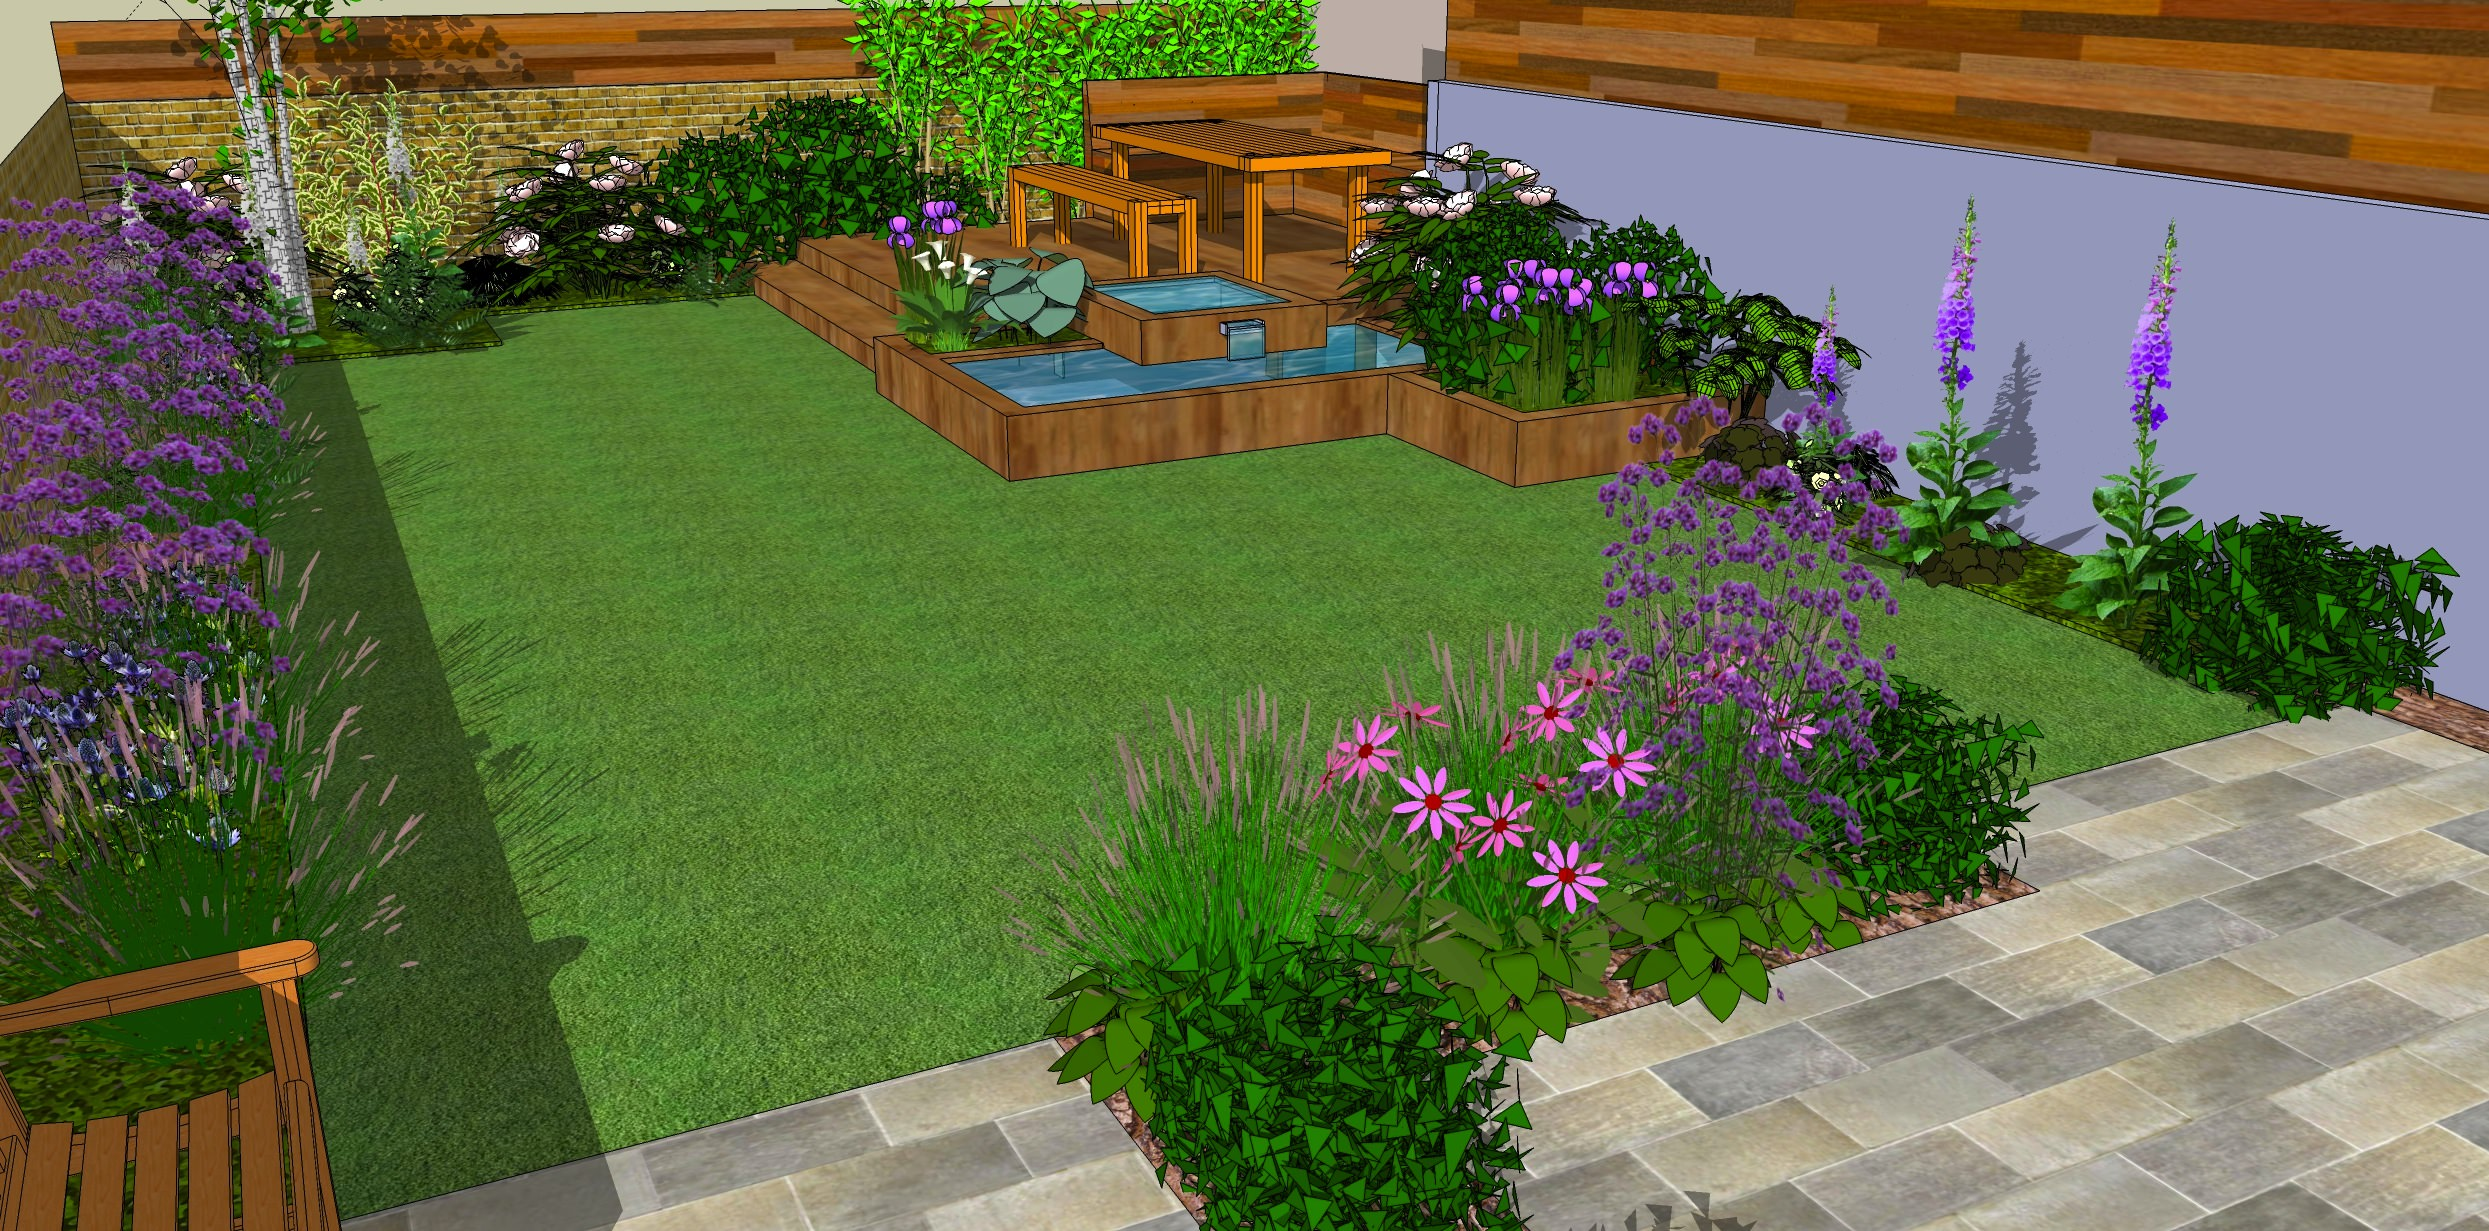 Low maintenance garden designs garden club london for Garden designs simple